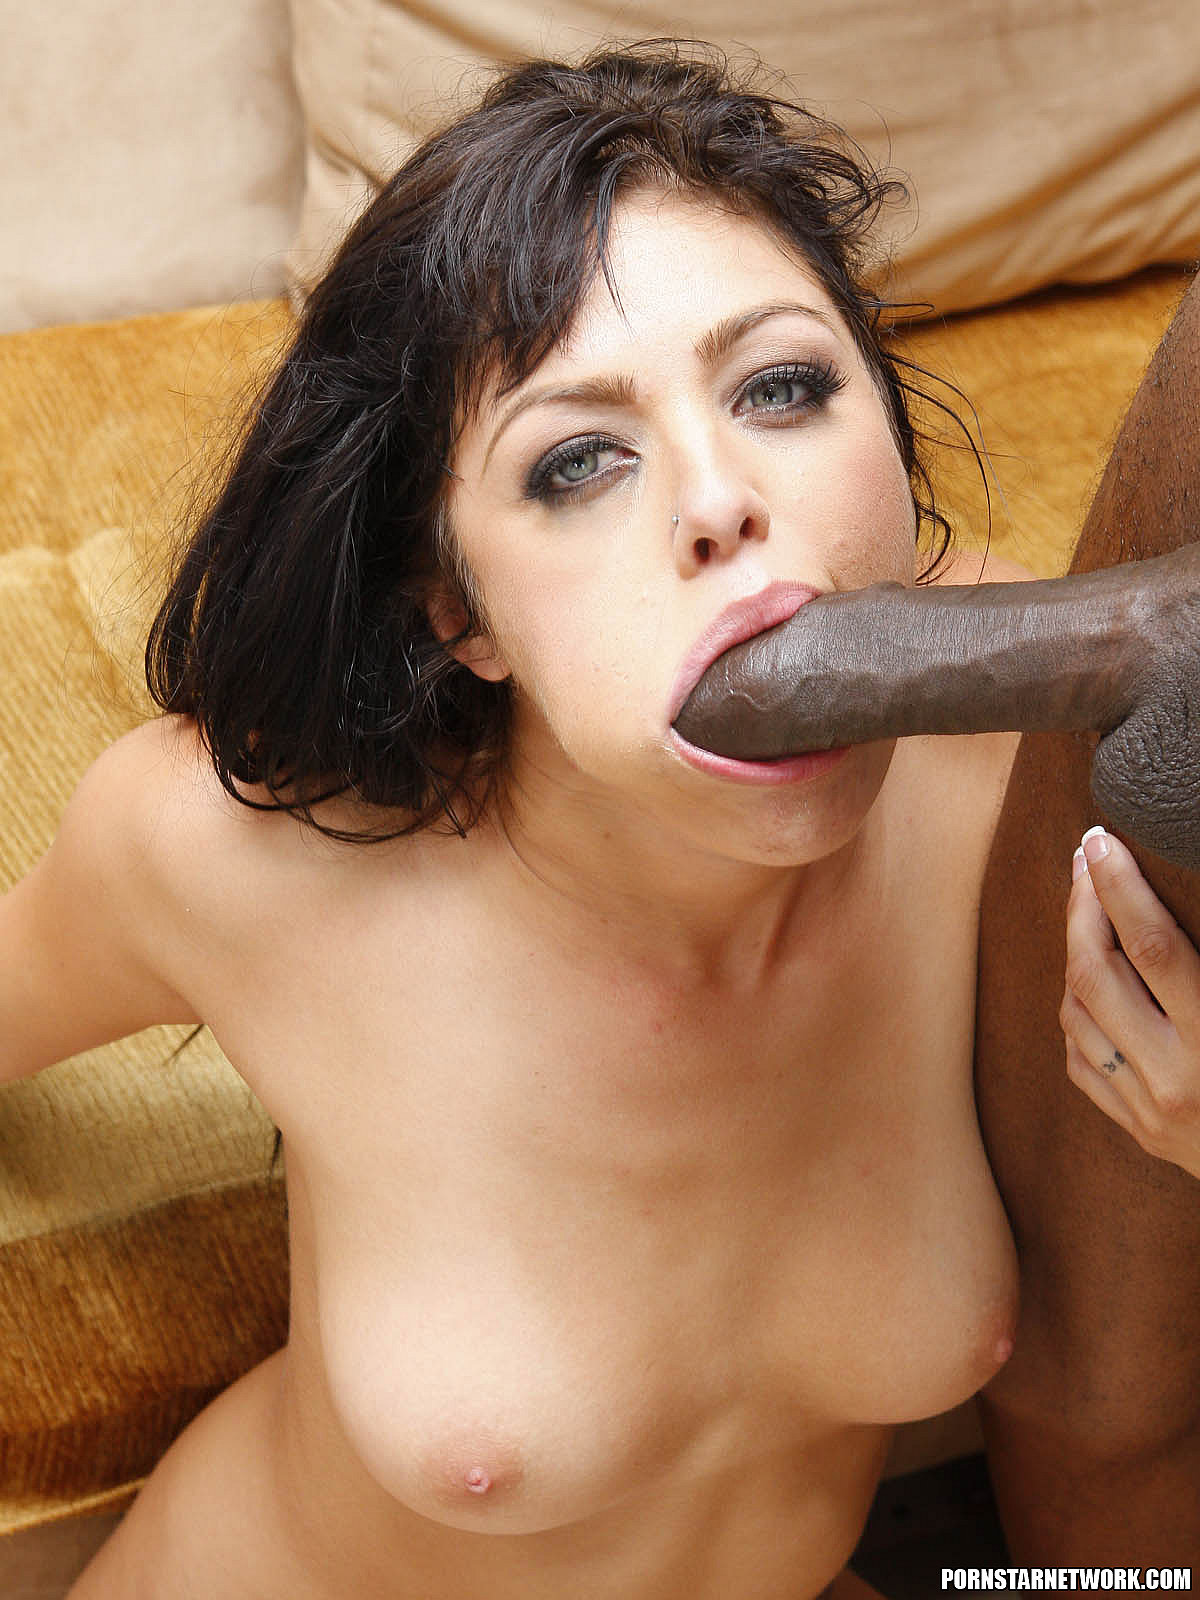 Sadie West Goes Big And Goes Wild For Interracial 58354-9435